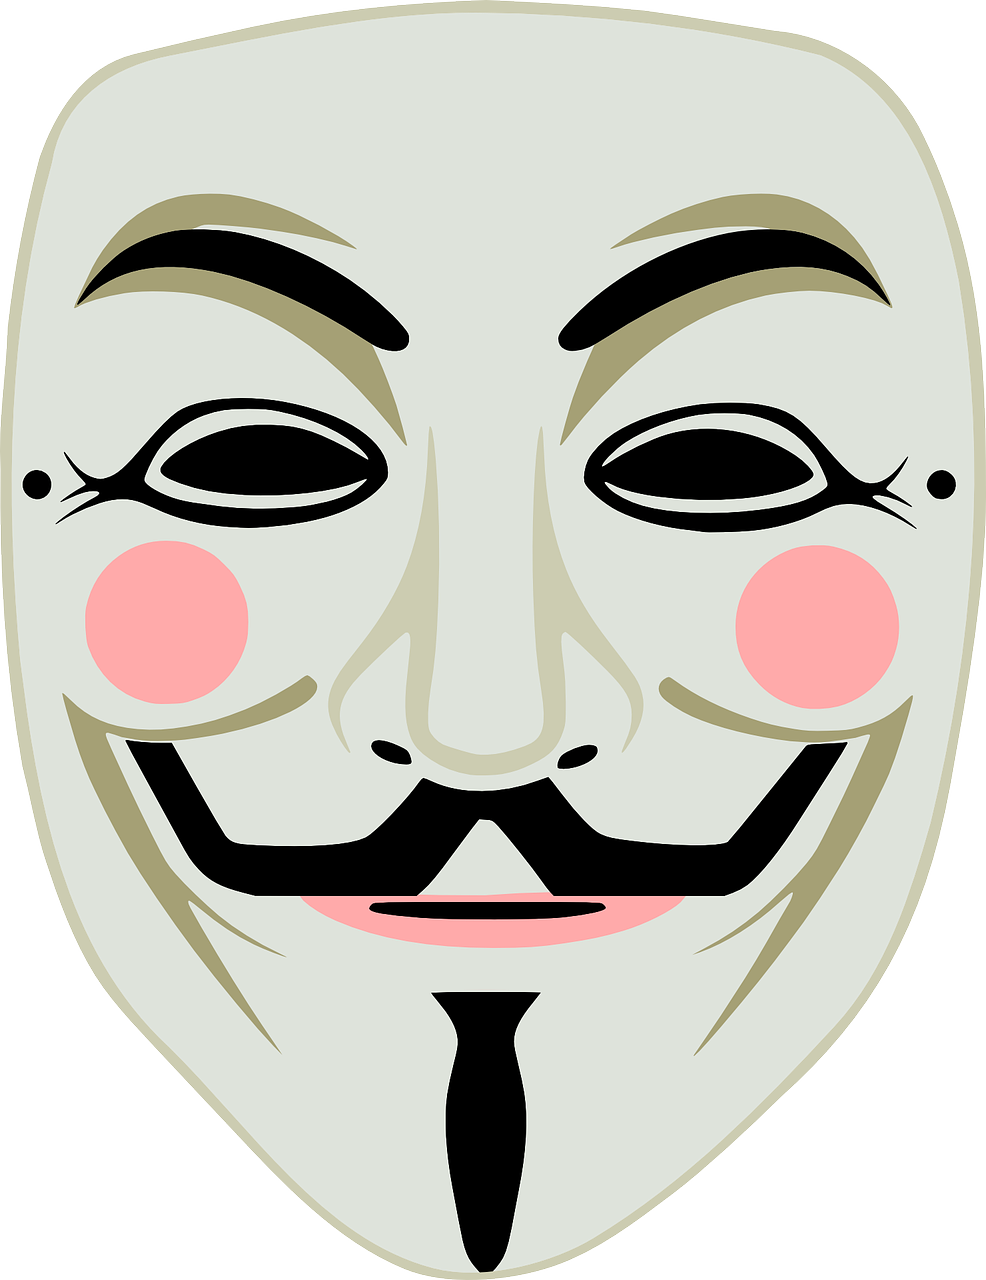 fawkes-157941_1280.png